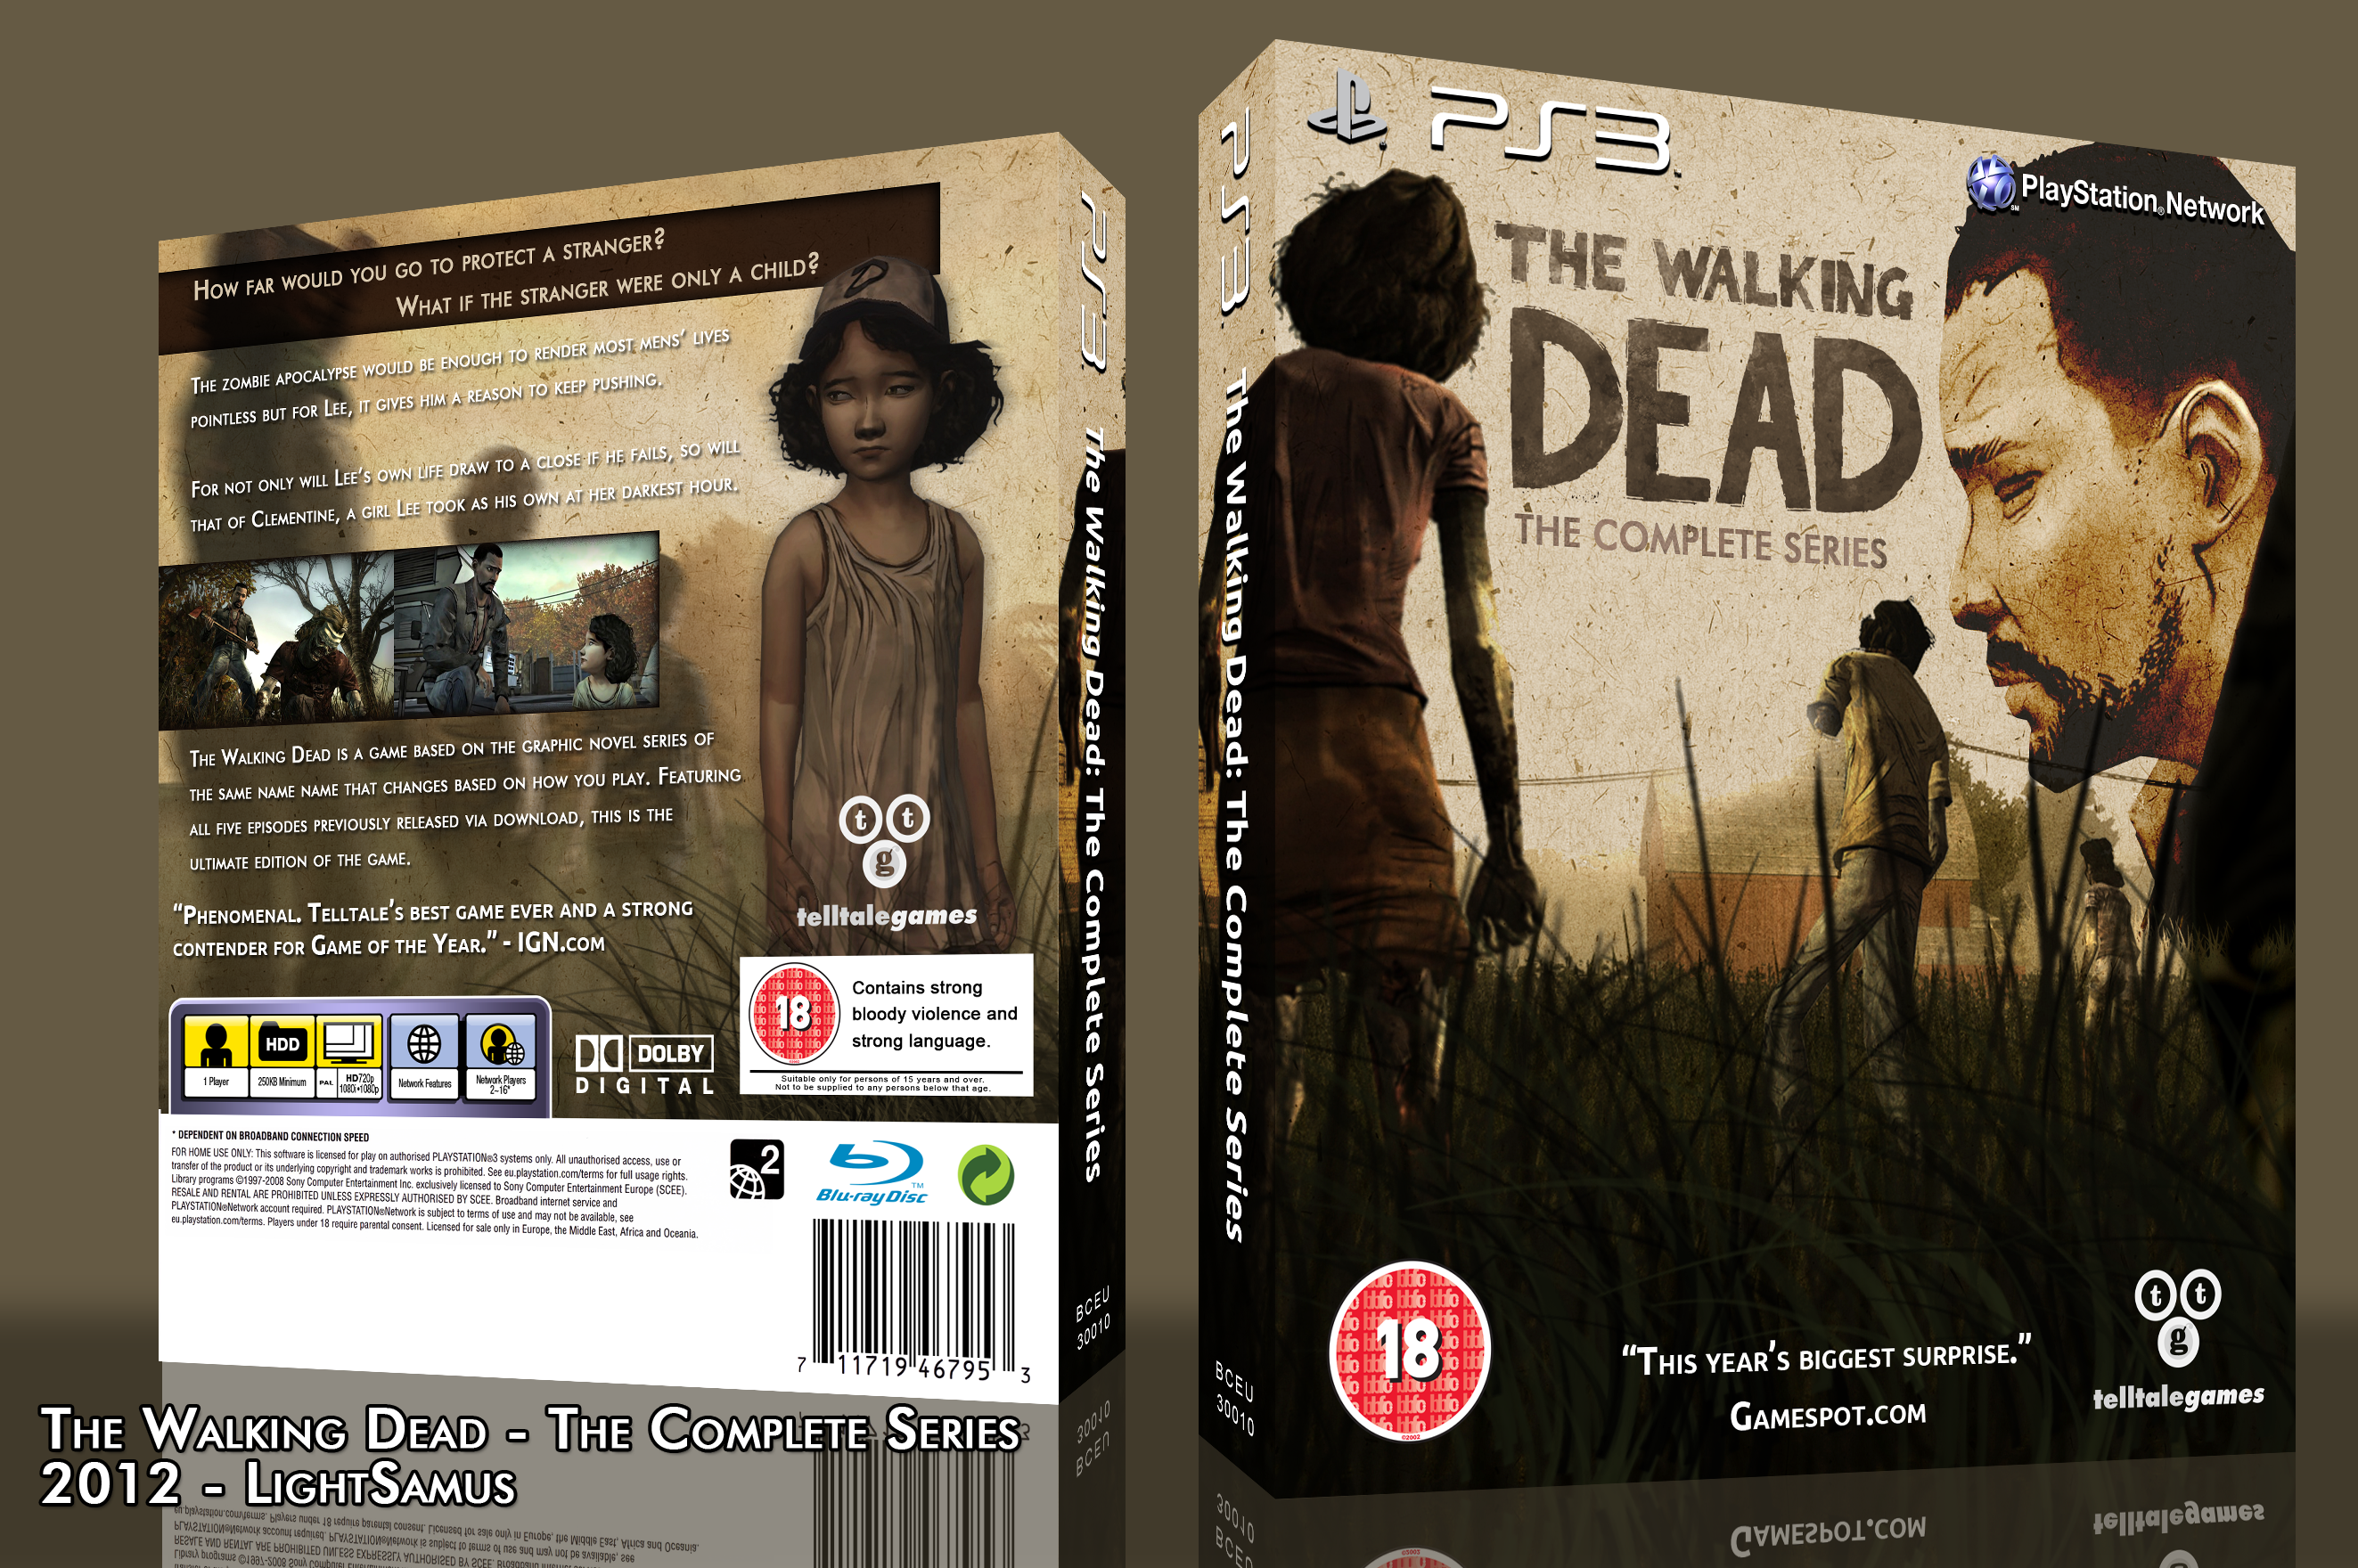 The Walking Dead: The Game box cover